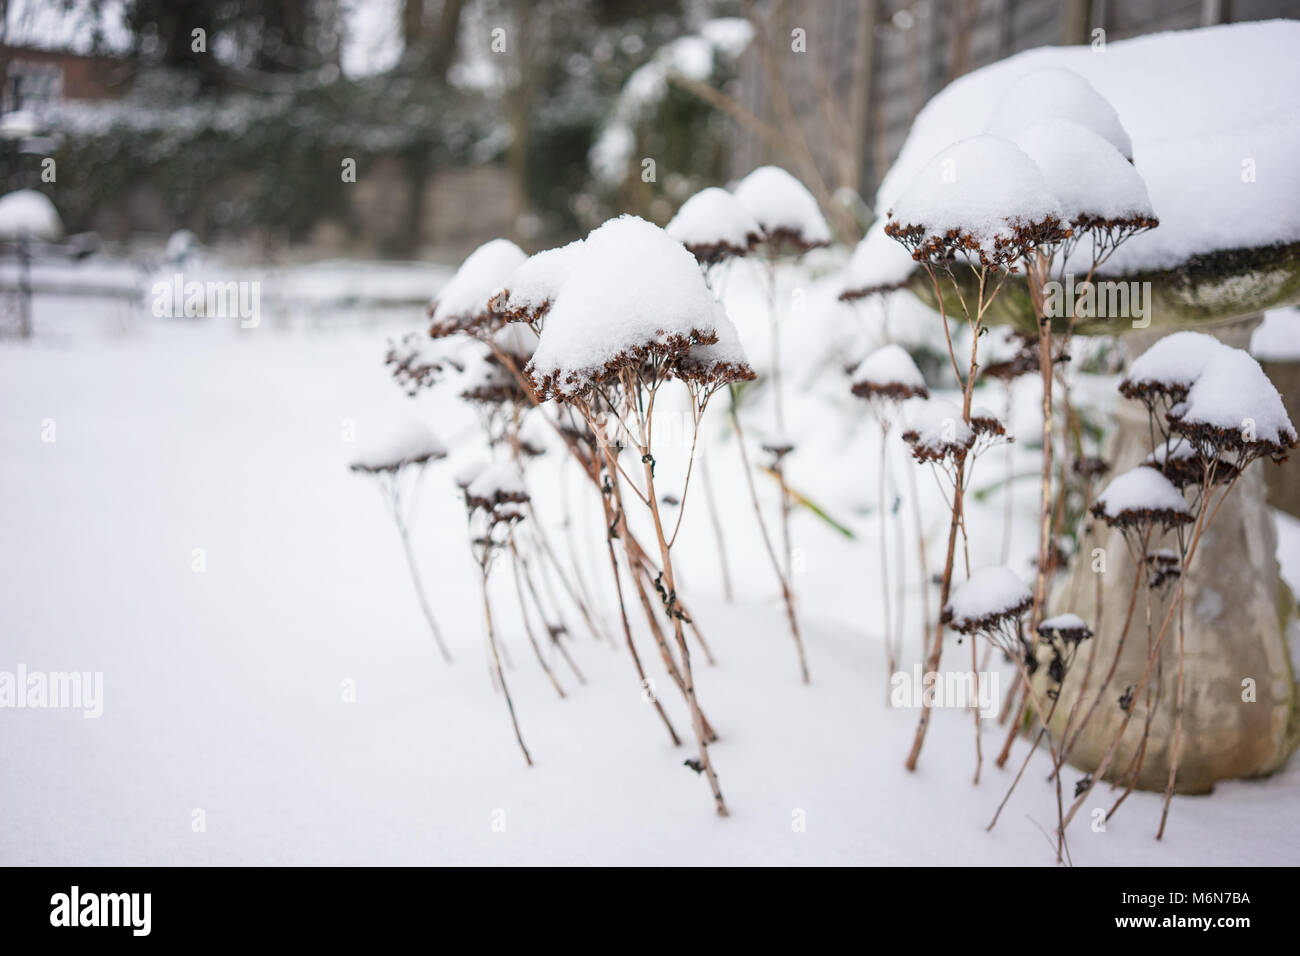 Dried Plant Covered in Snow - Stock Image